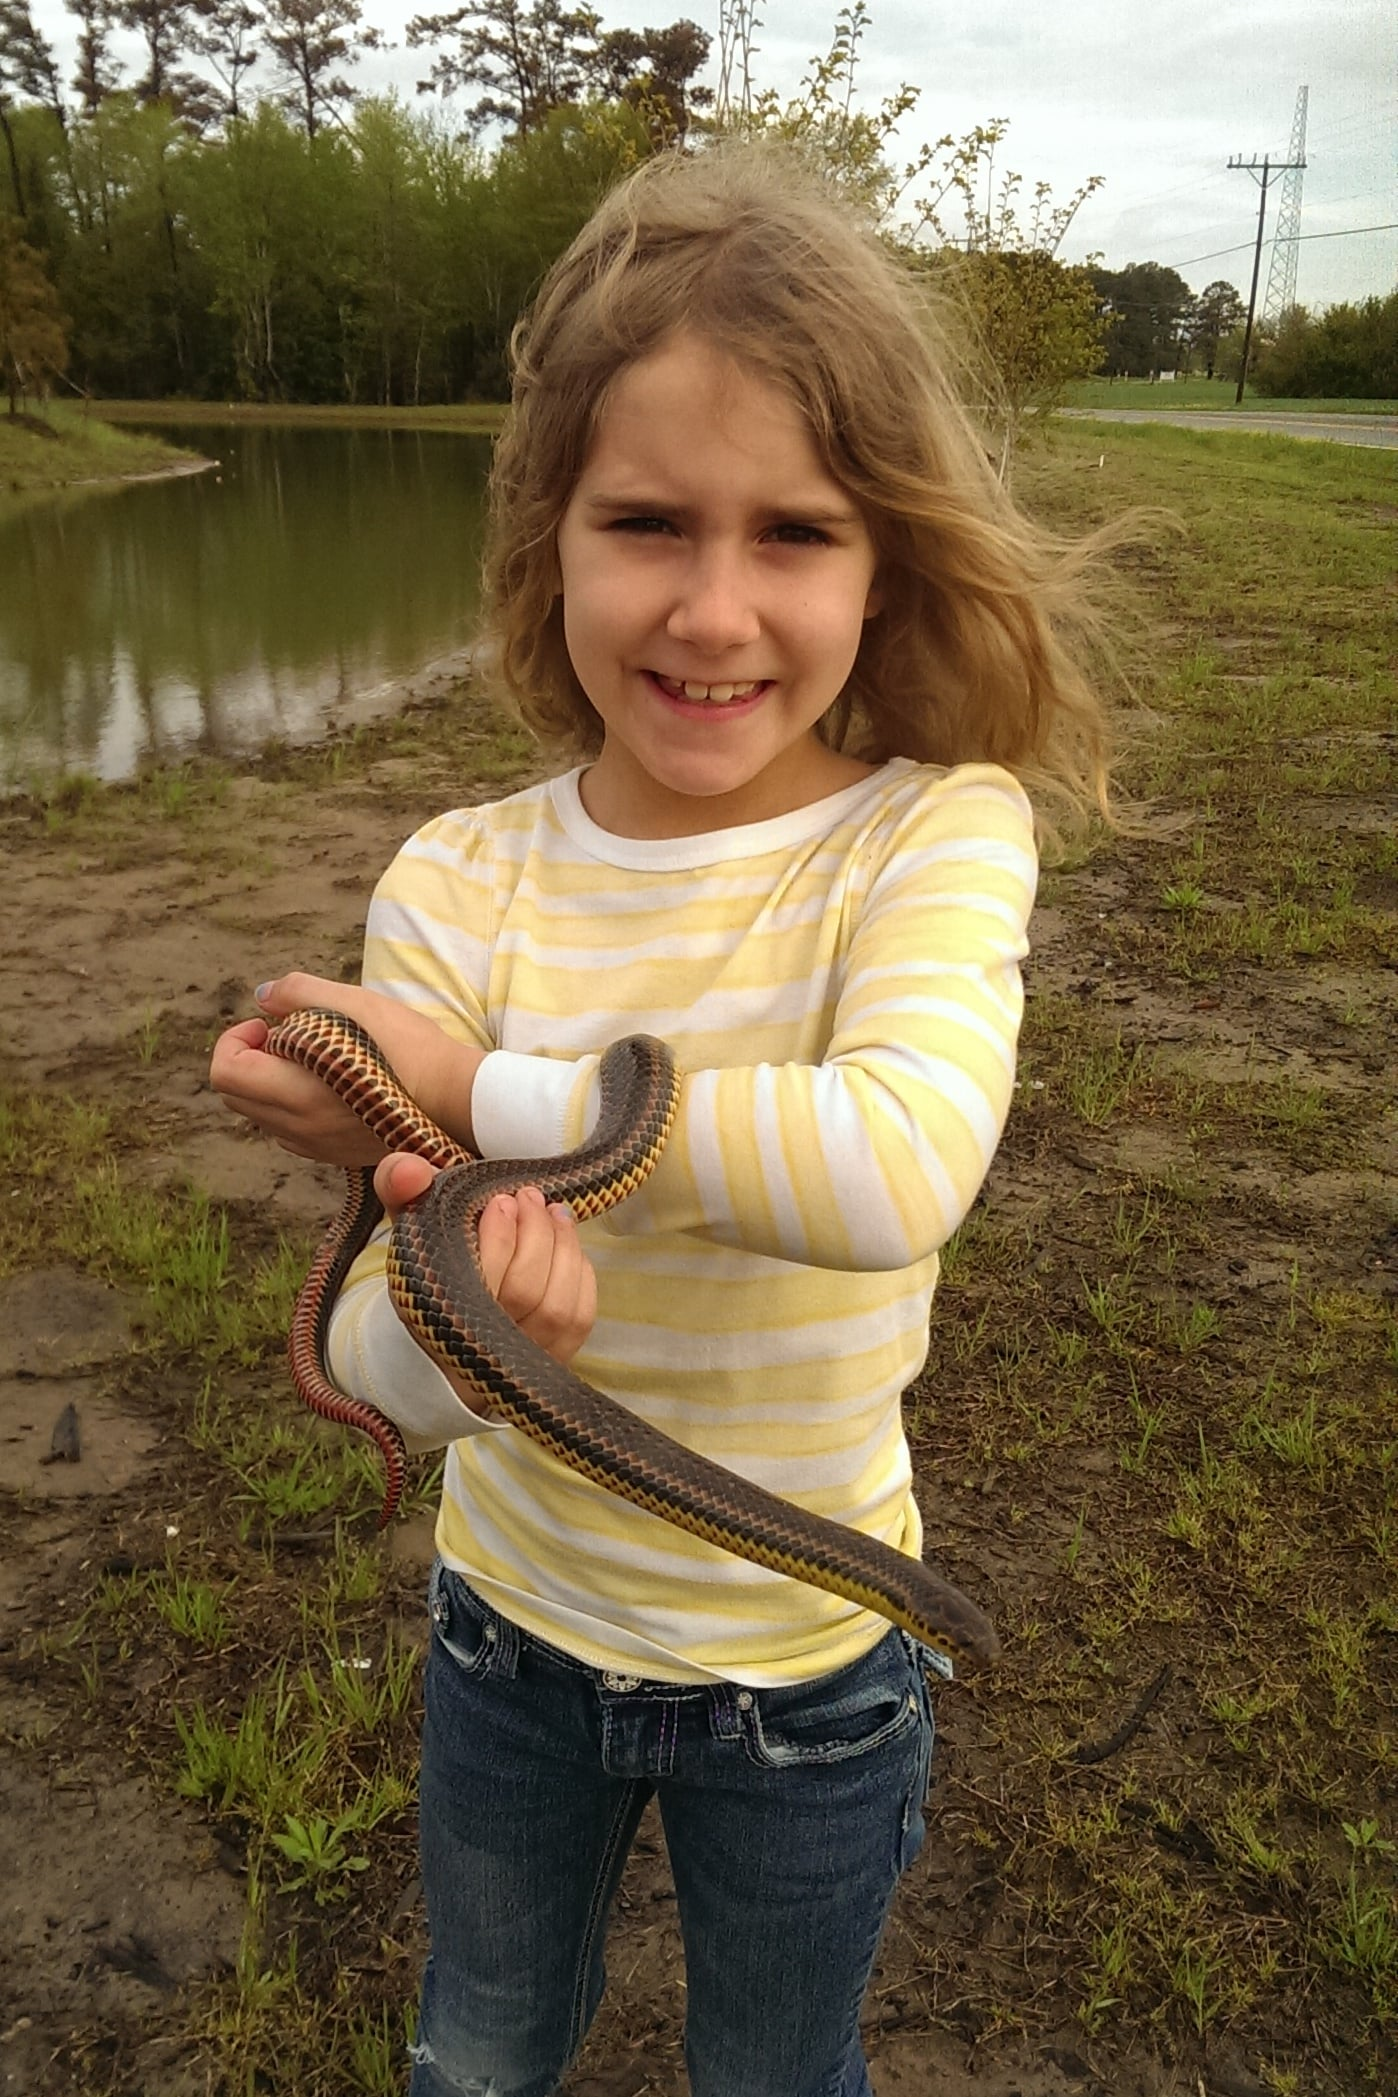 Common Rainbow Snake - I'm trying to keep the kid photos light, but this is a lifer Lily will enjoy having over her brothers for every second it stays that way.